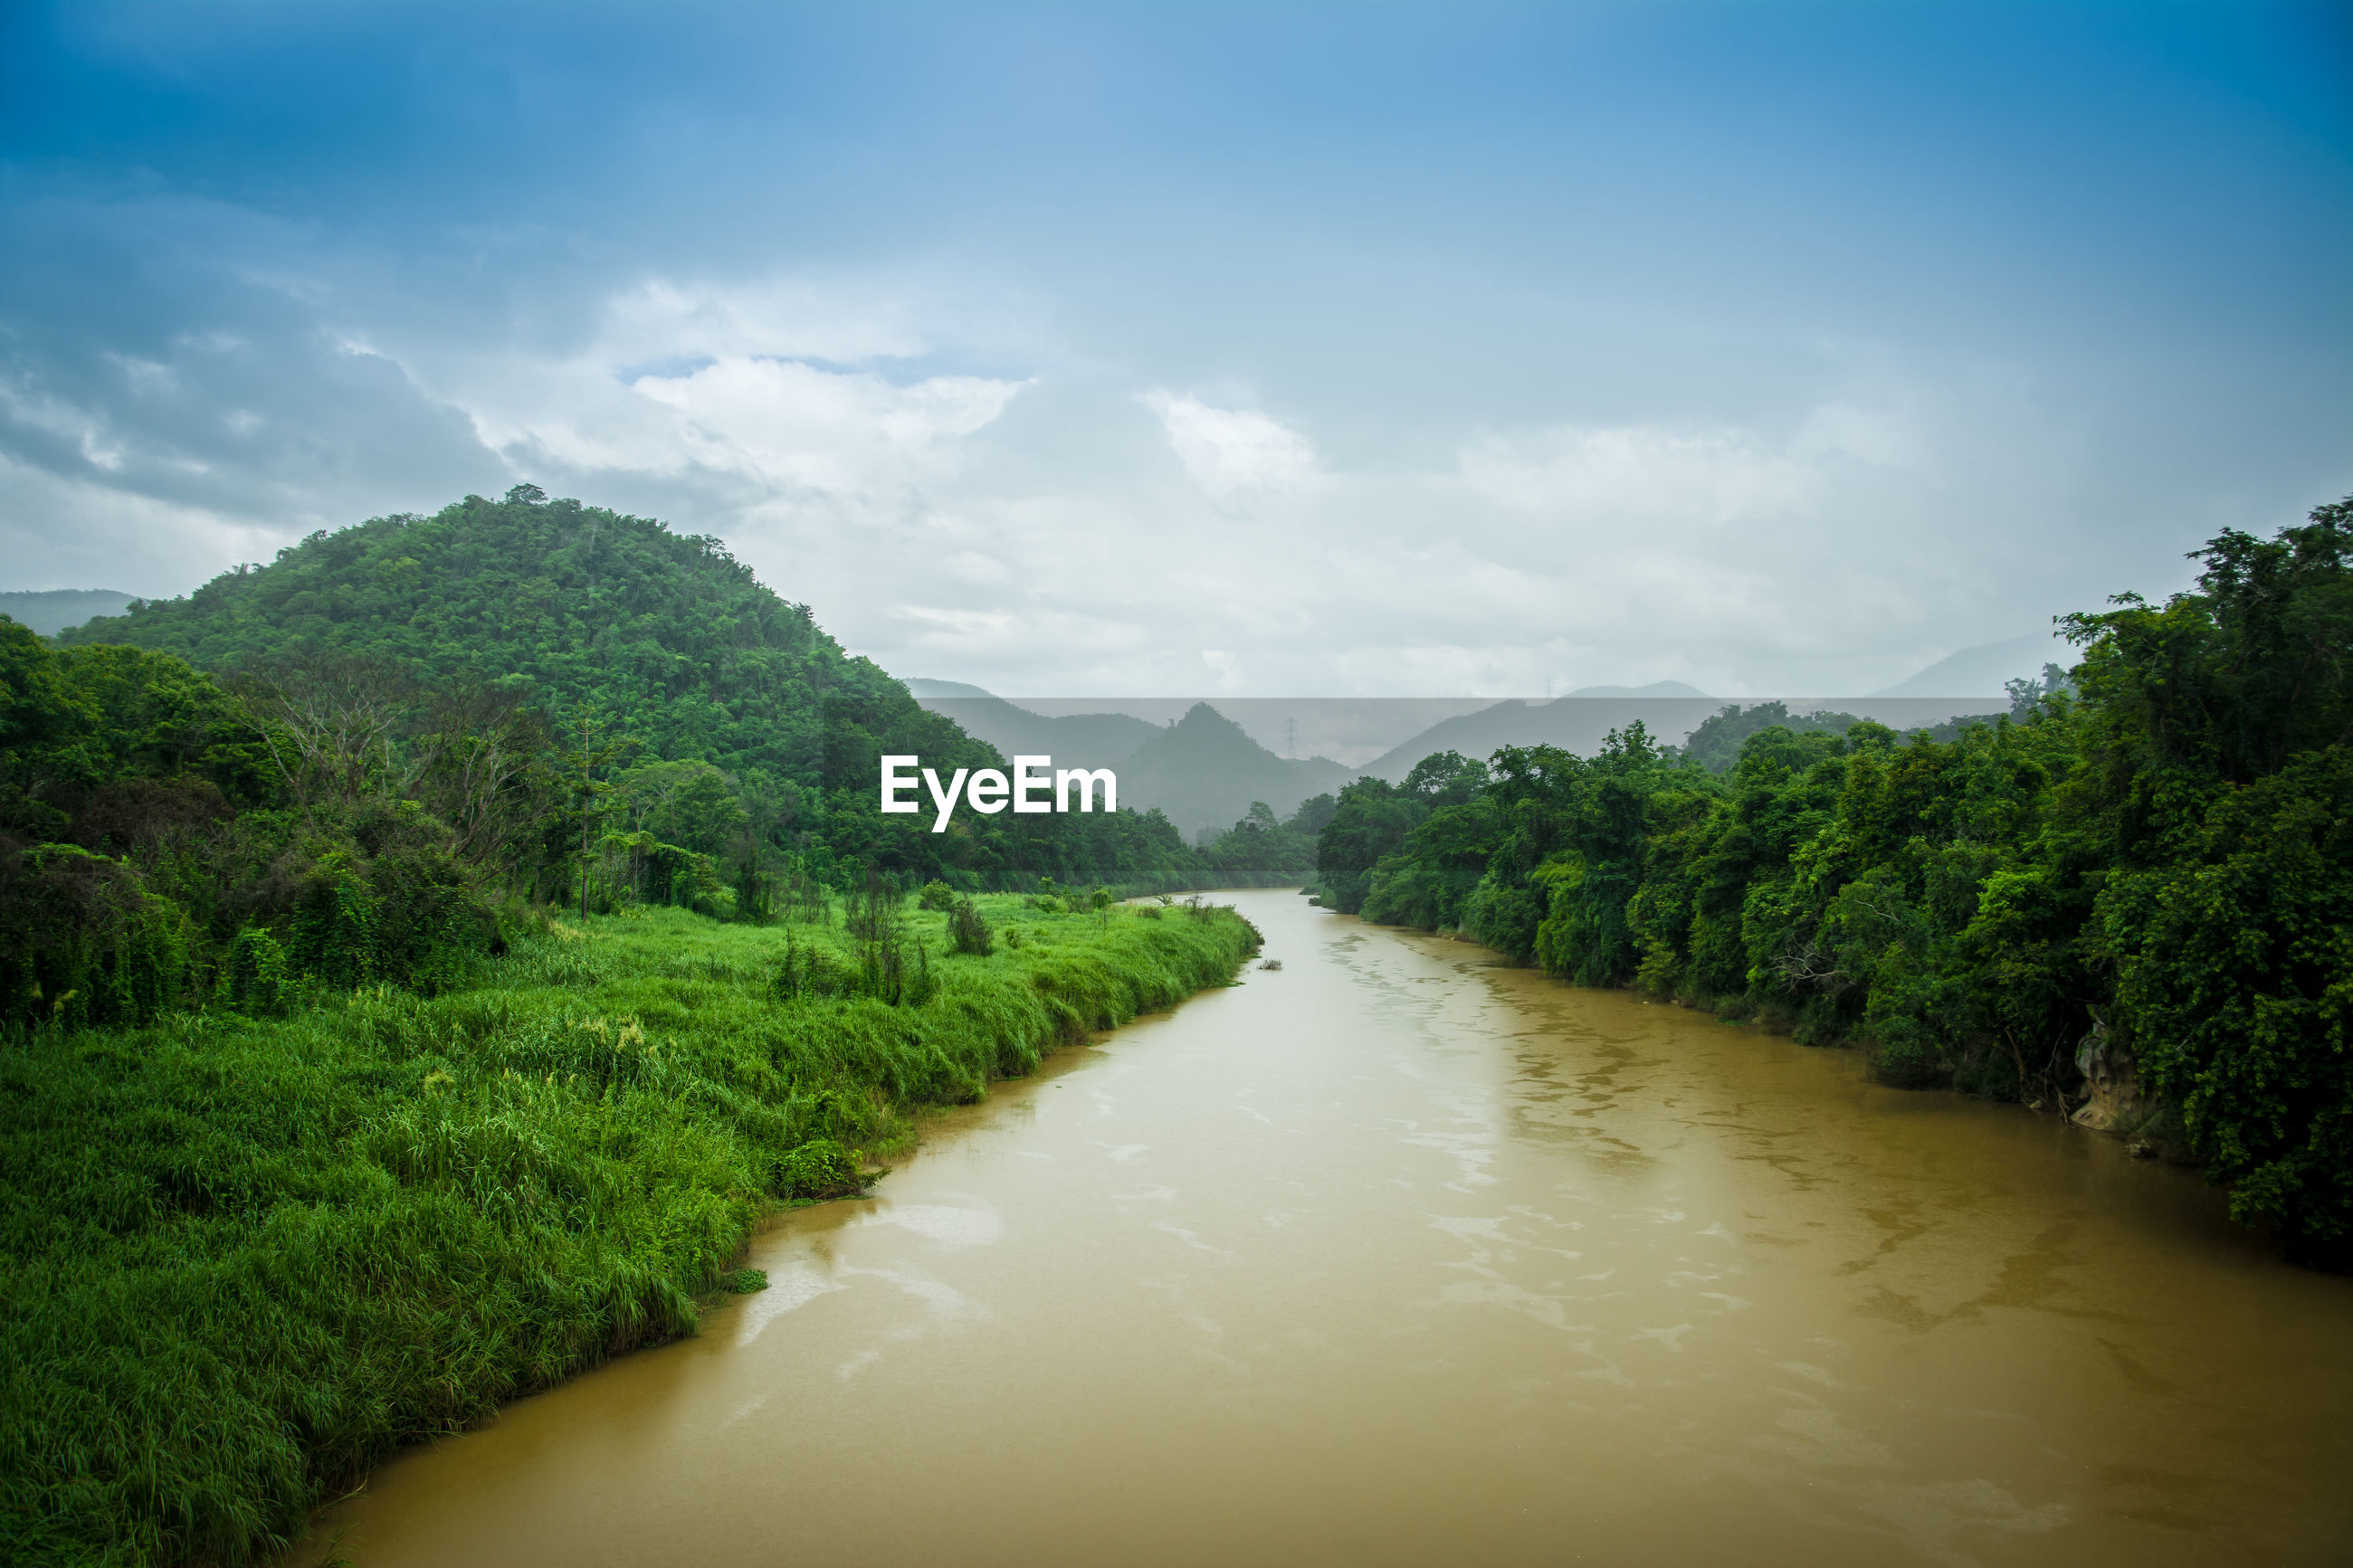 SCENIC VIEW OF RIVER WITH TREES IN BACKGROUND